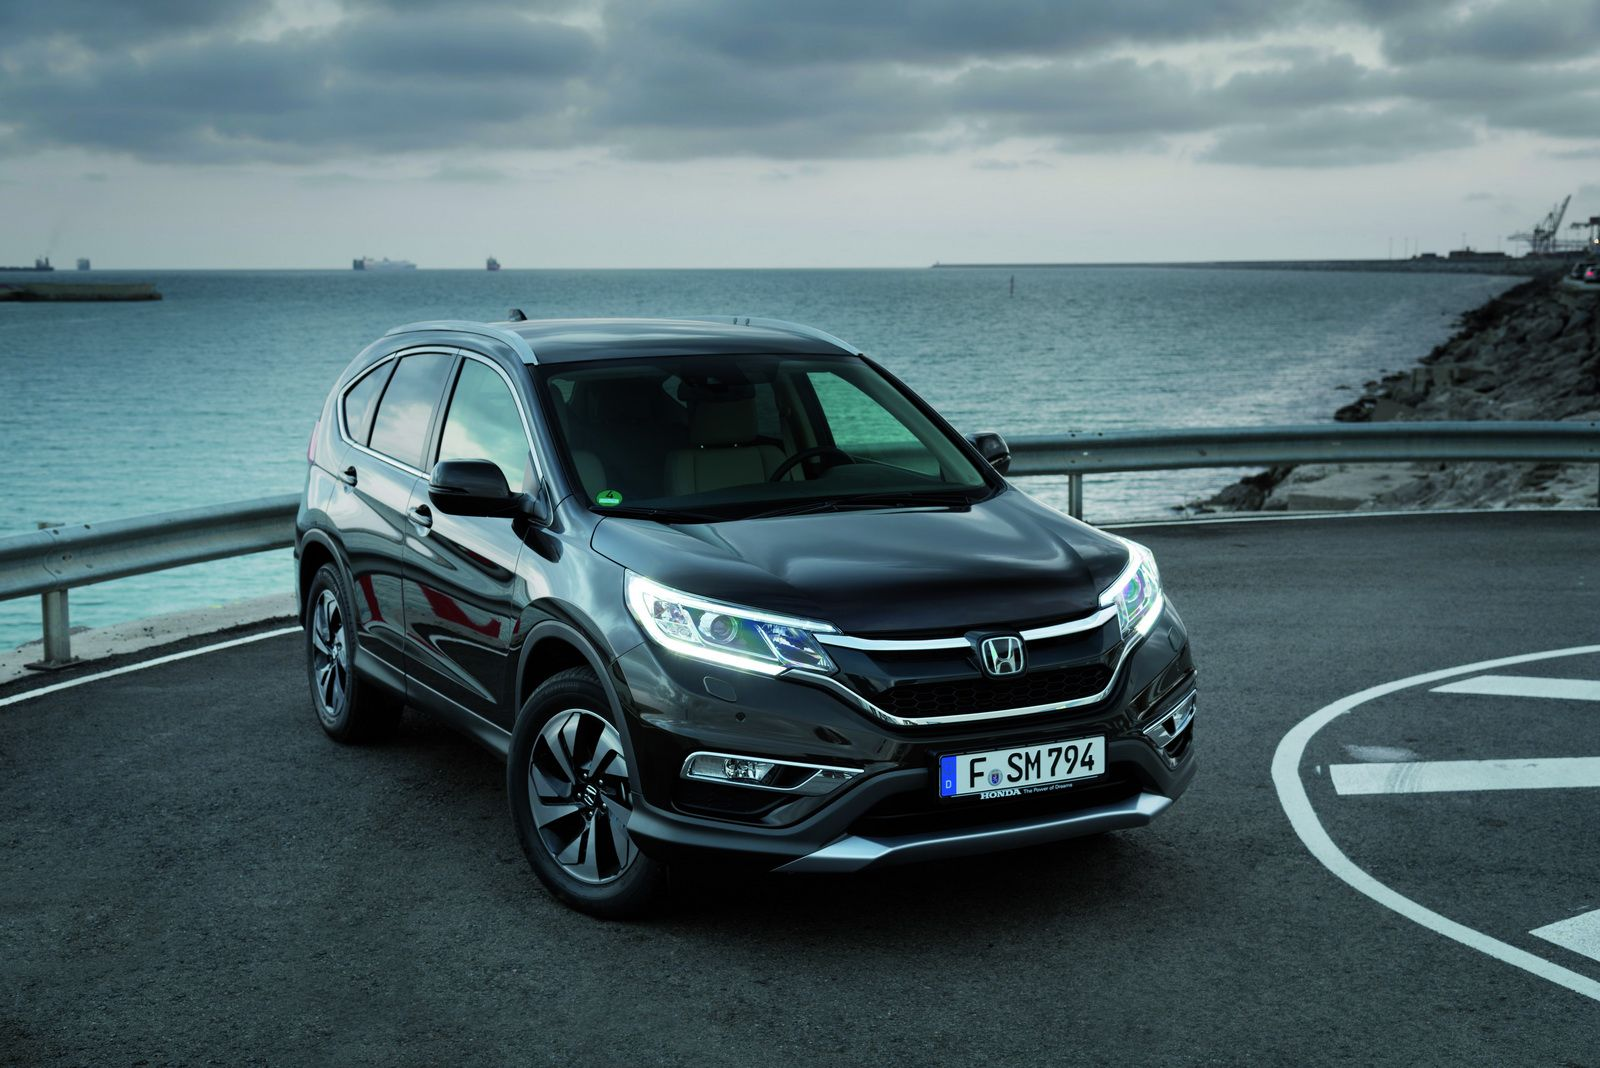 Honda has released full details about the facelifted cr v for europe